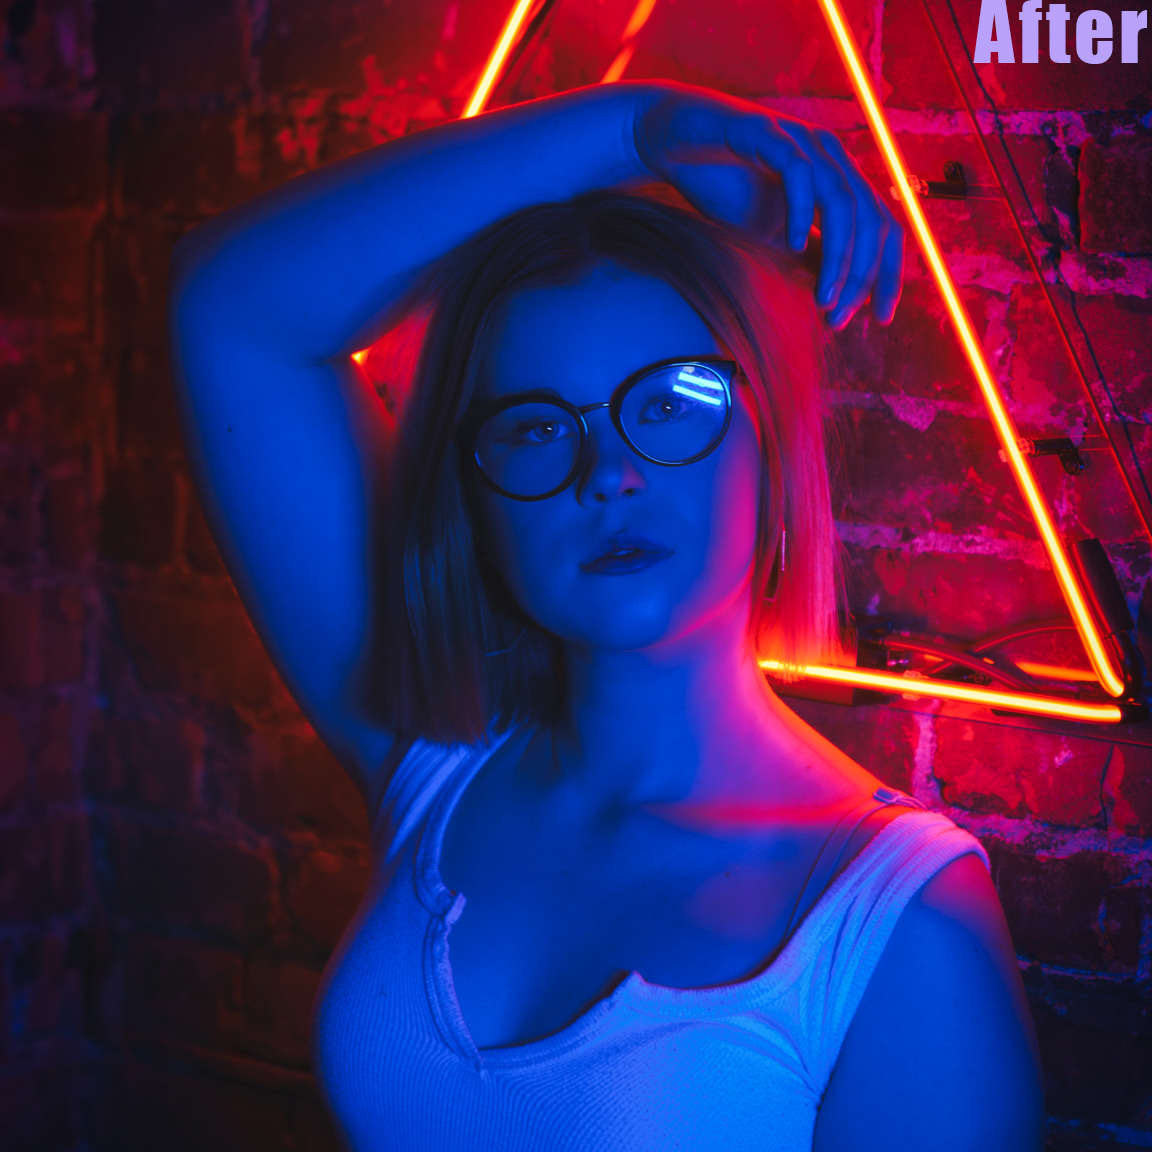 after edit girl posing with neon